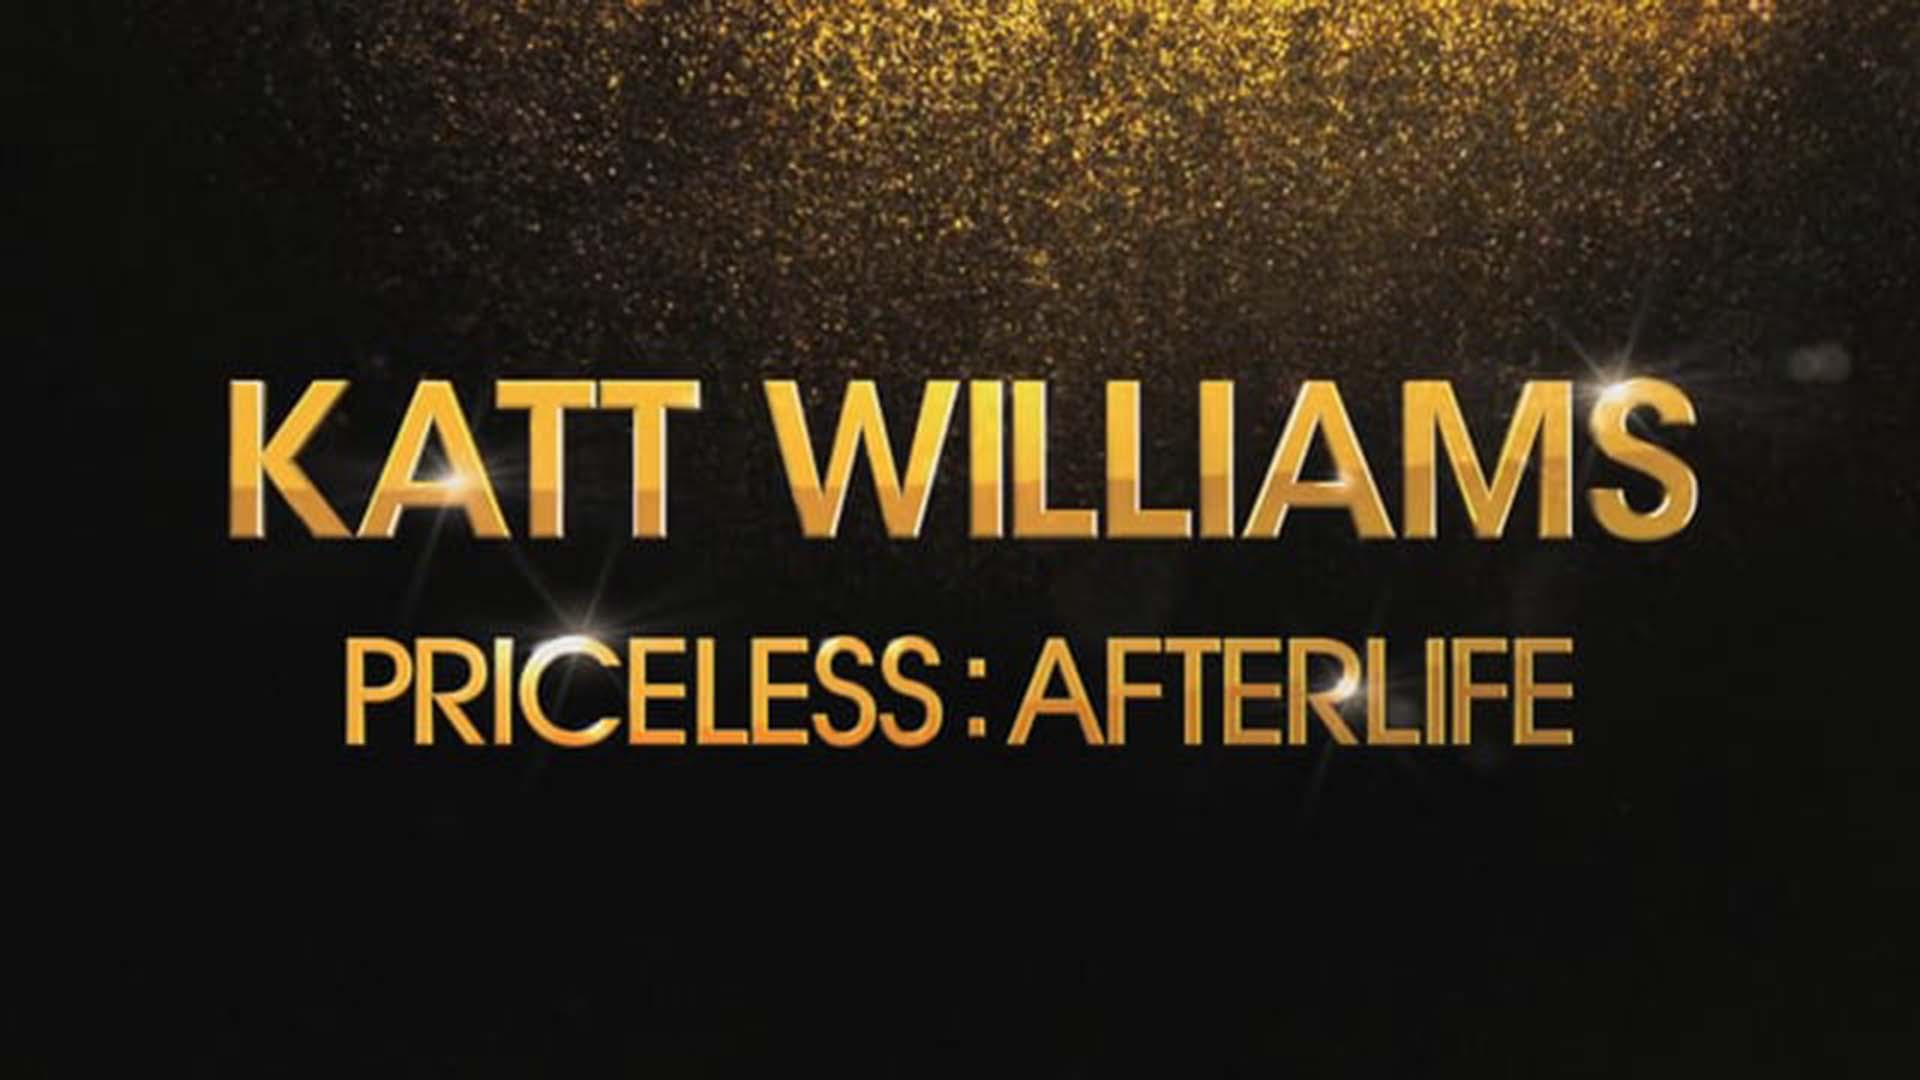 Katt Williams Priceless Afterlife Horizontal